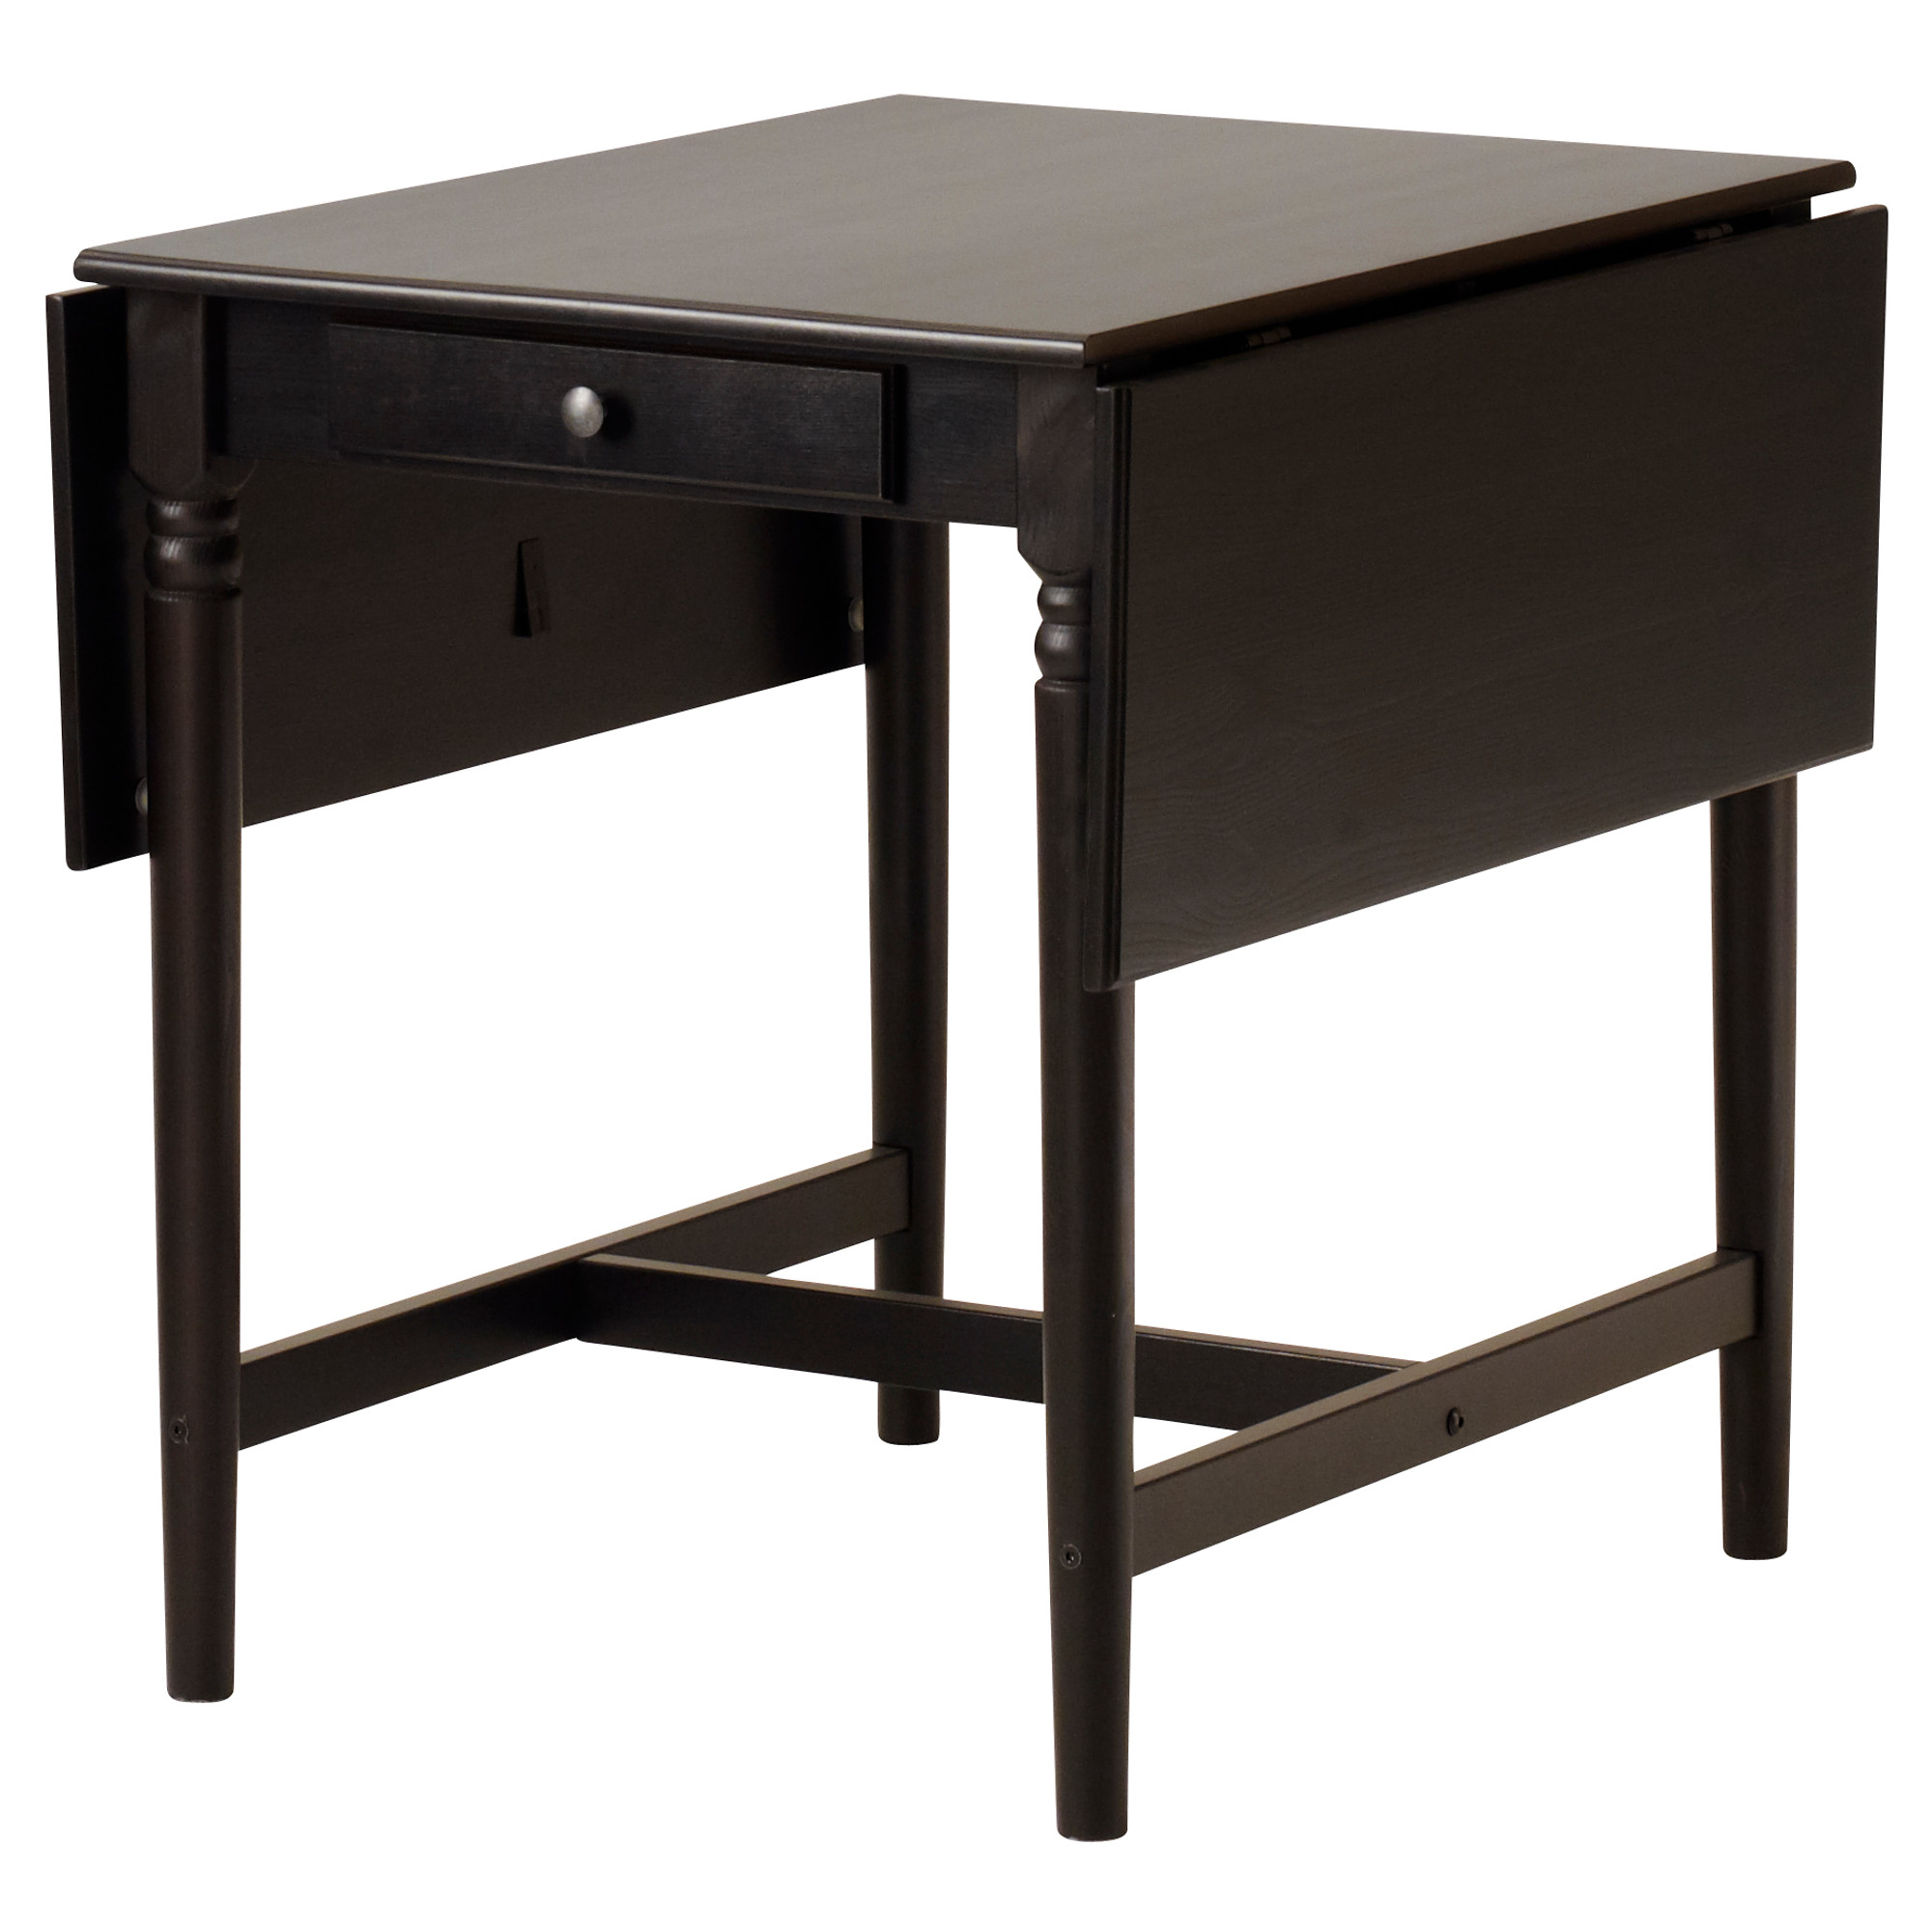 - INGATORP/STEFAN Table And 2 Chairs, Black-brown/brown-black IKEA